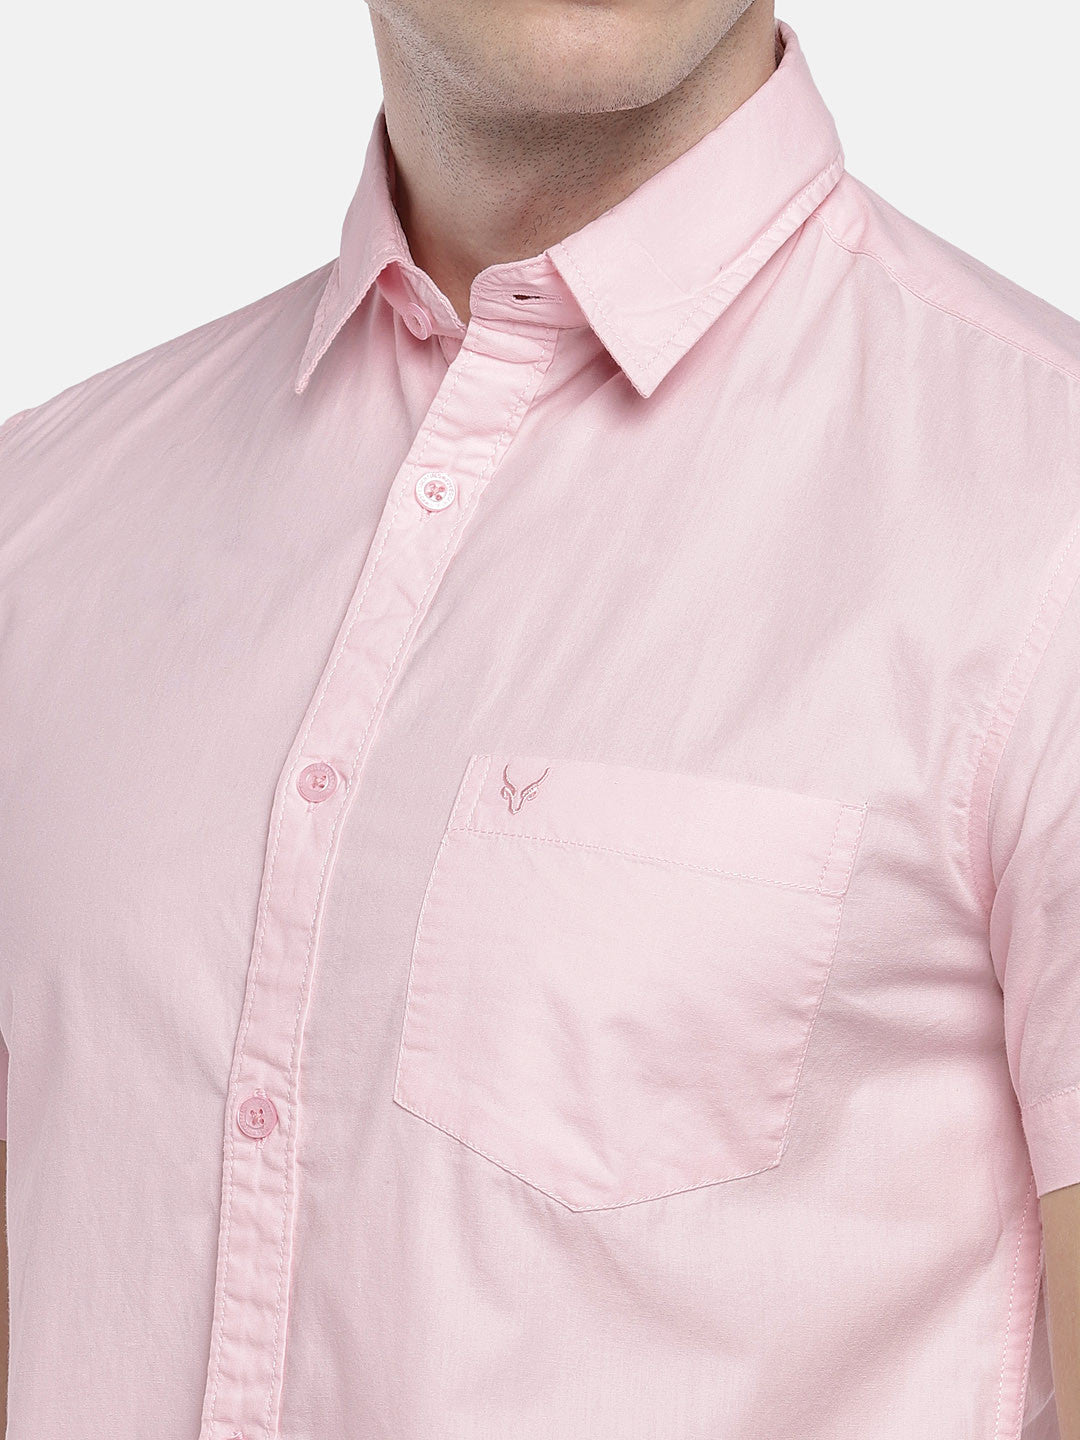 Pink Regular Fit Solid Casual Shirt-5